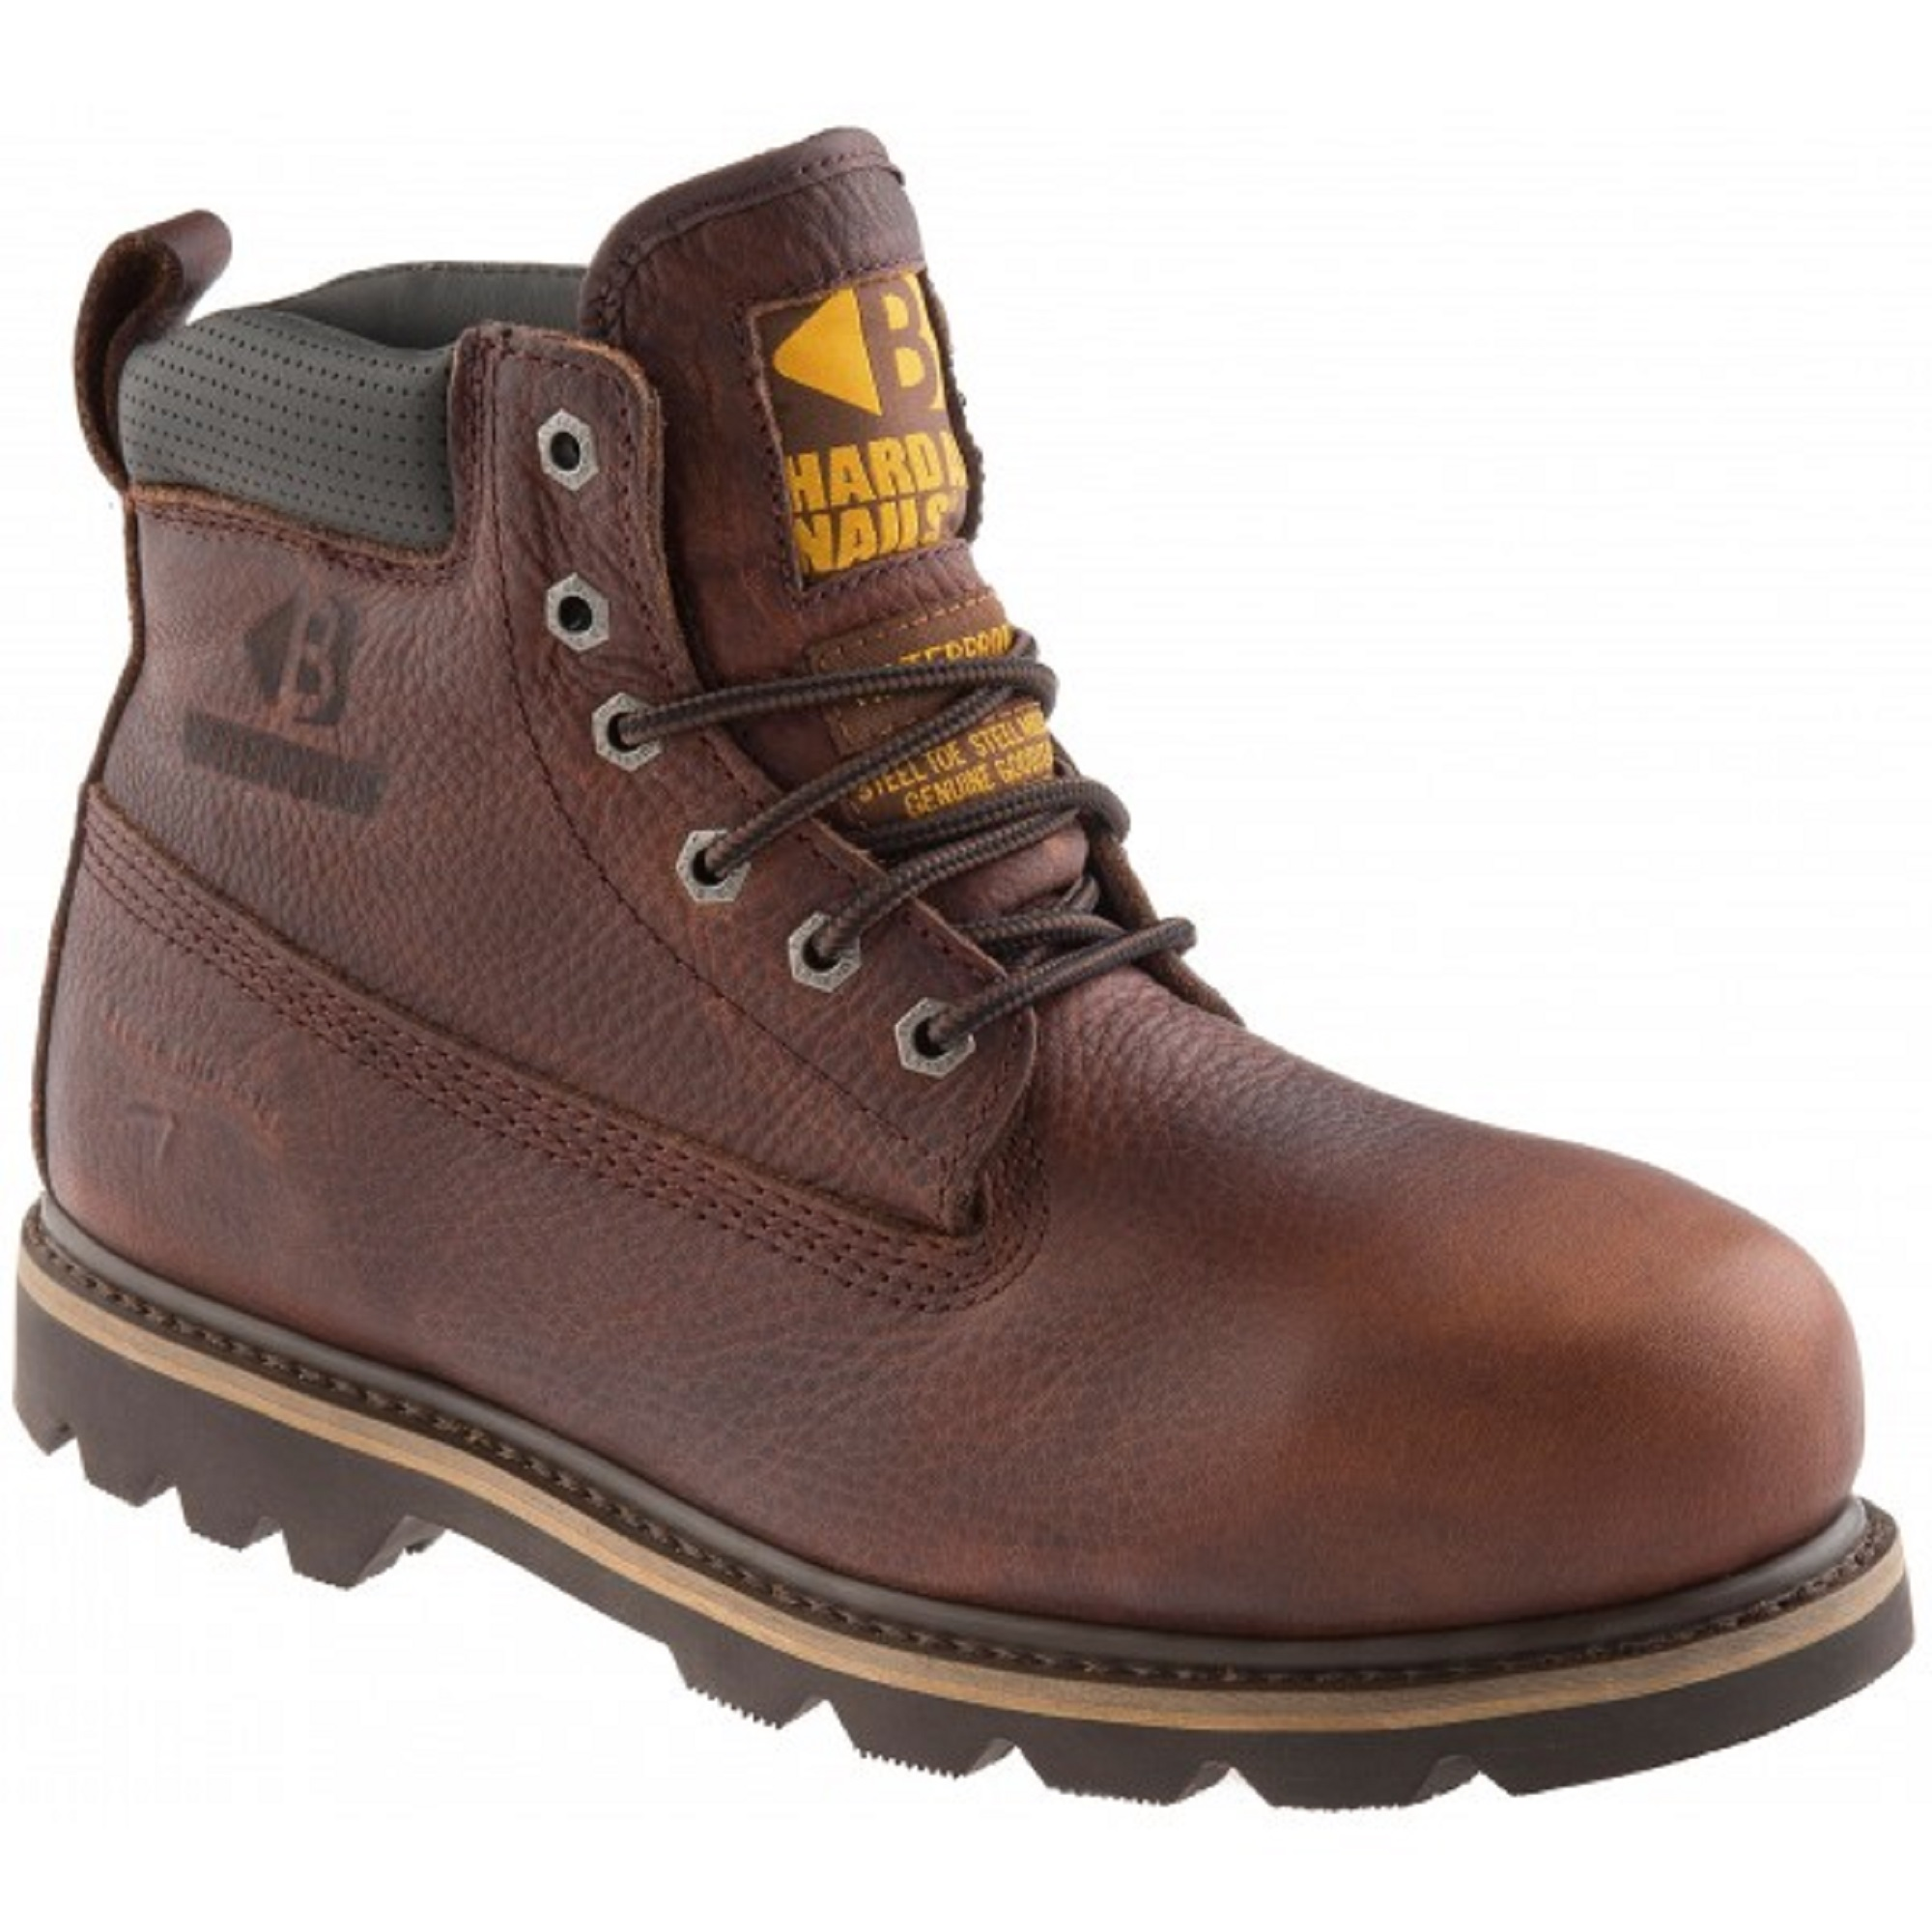 Dark brown weathergrain leather Buckler B750SMWP lace up safety boot with yellow Buckler logo on the tongue